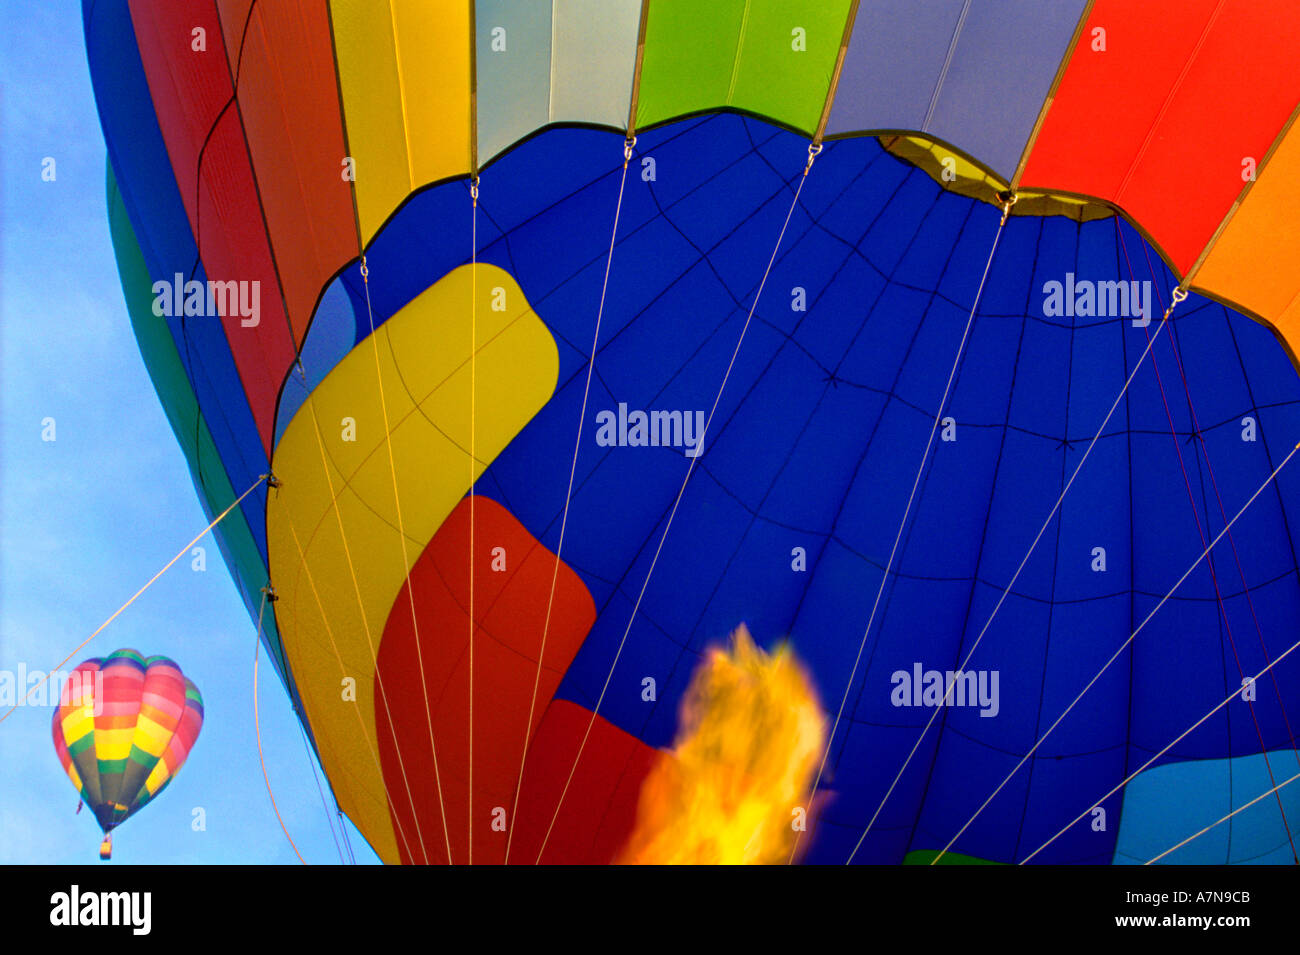 Close up of a hot air balloon heated by a propane burner in preparation for flight Another balloon rises in the background - Stock Image